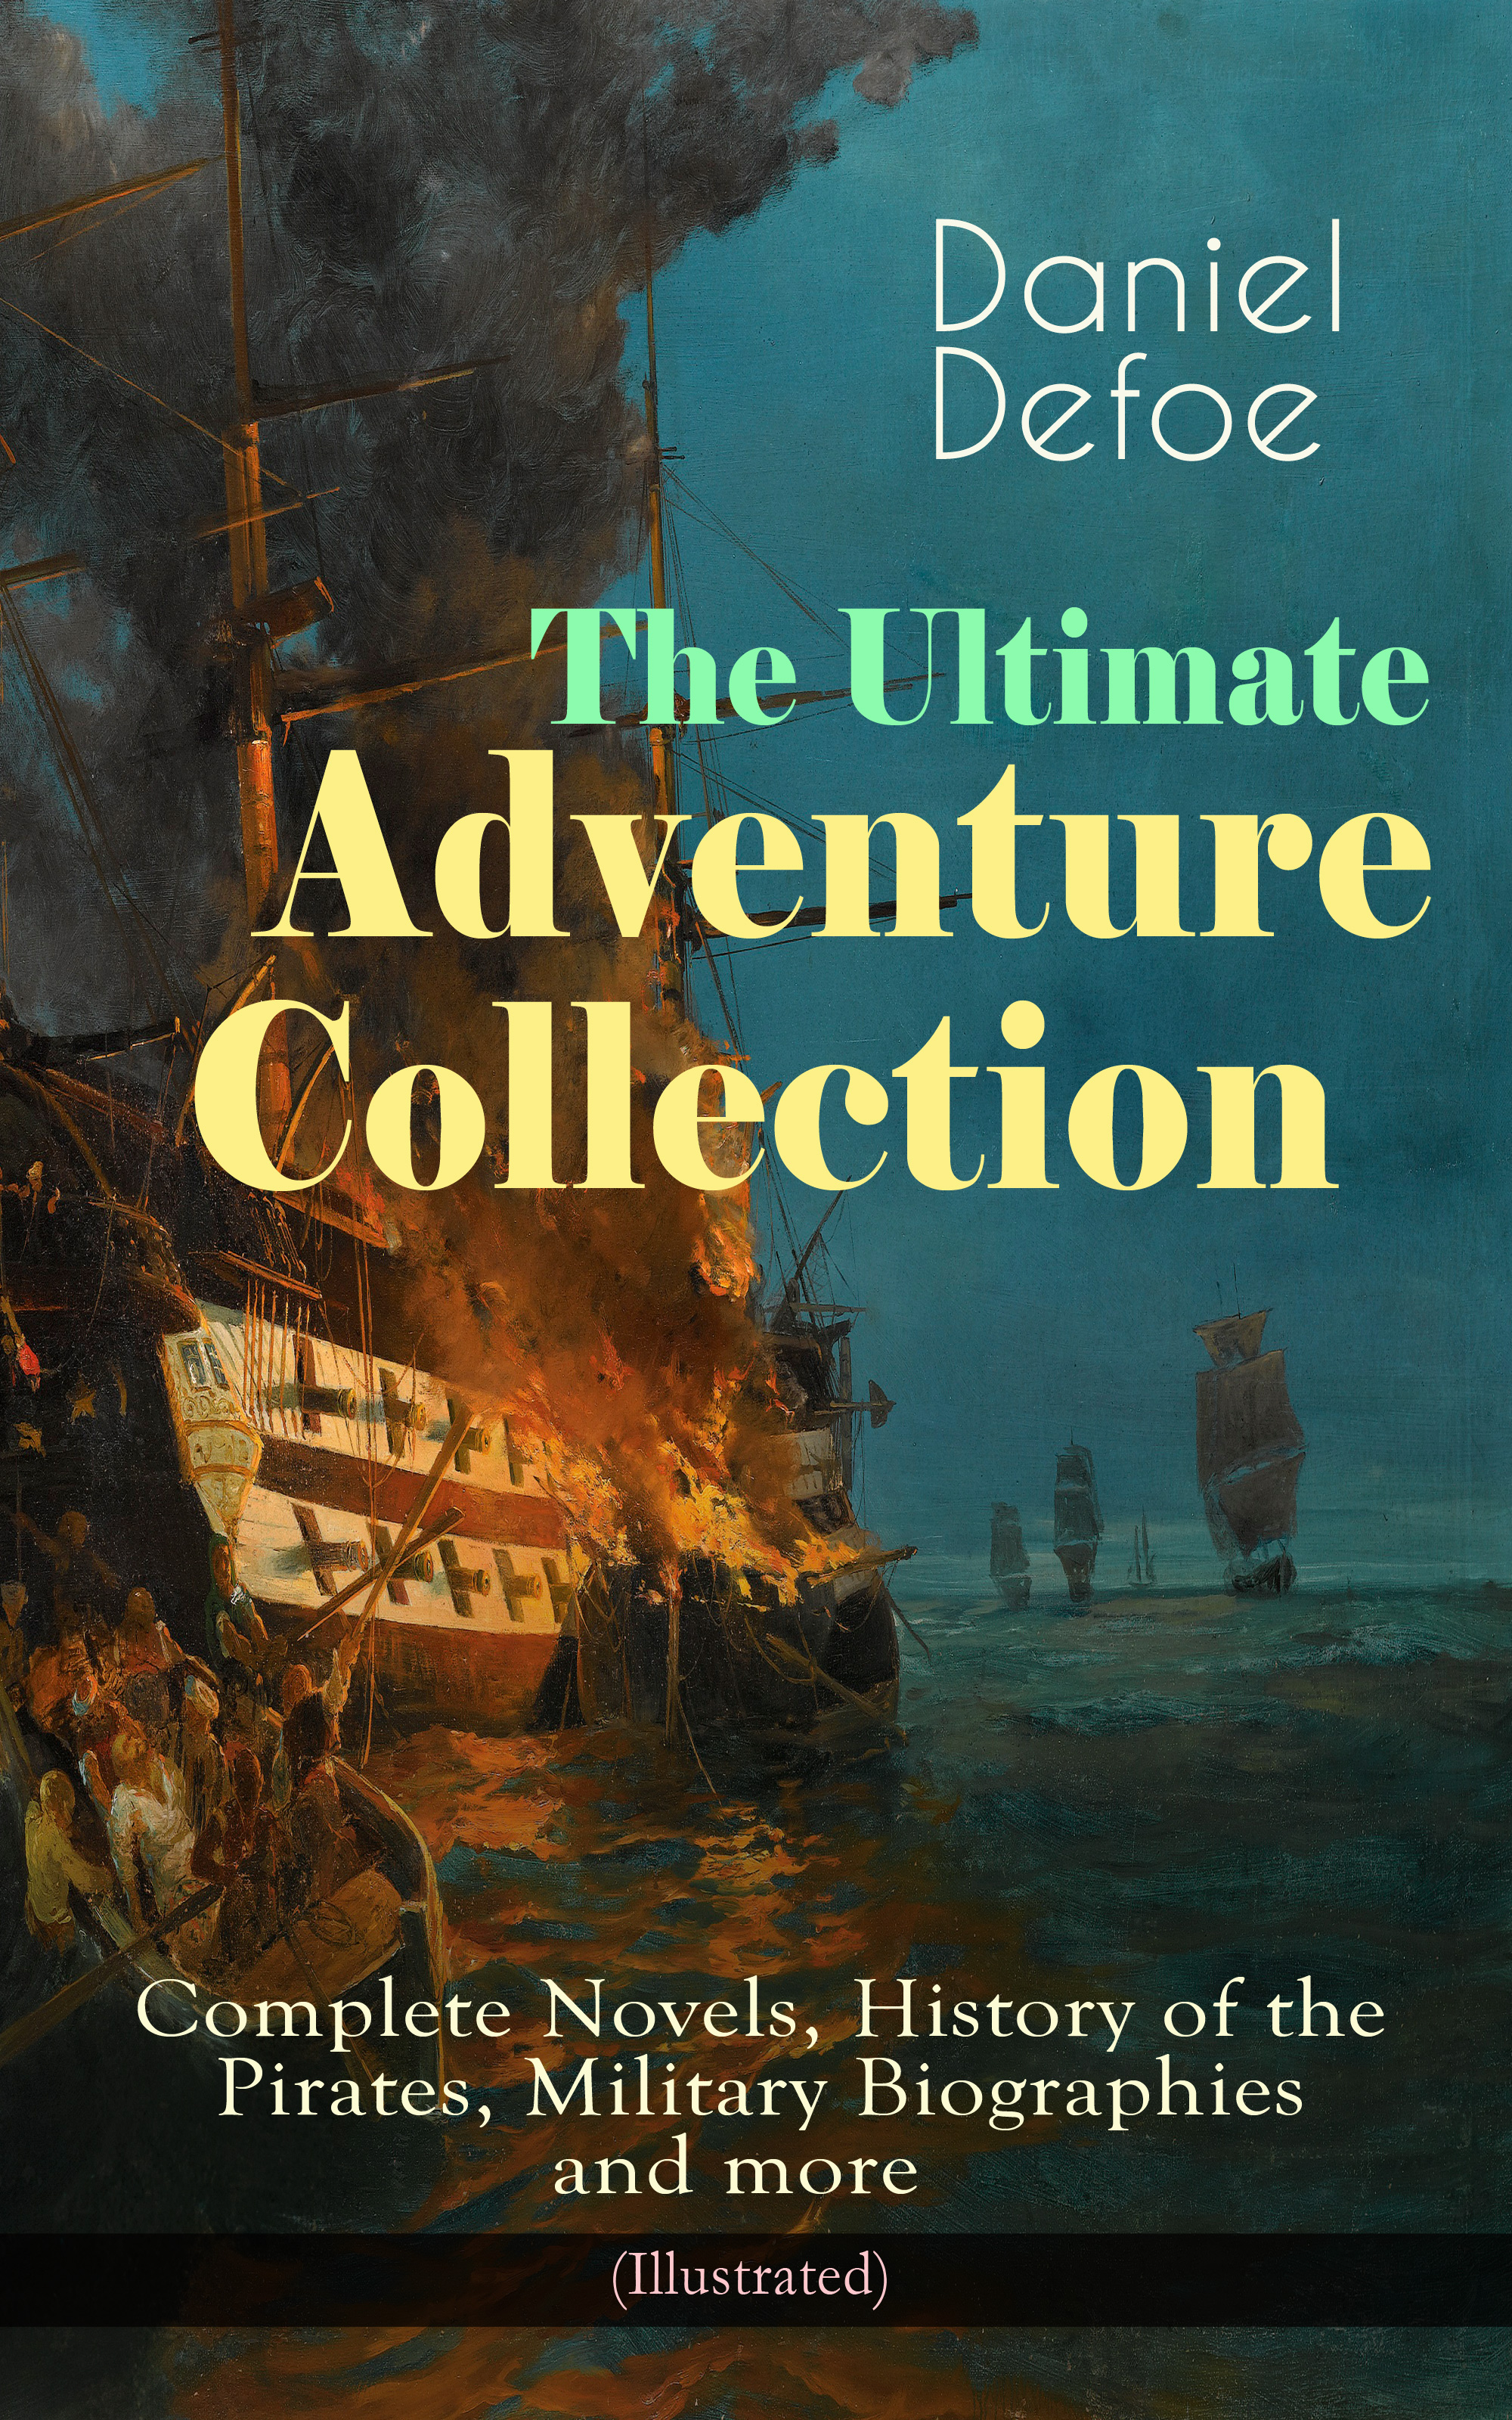 Daniel Defoe The Ultimate Adventure Collection: Complete Novels, History of the Pirates, Military Biographies